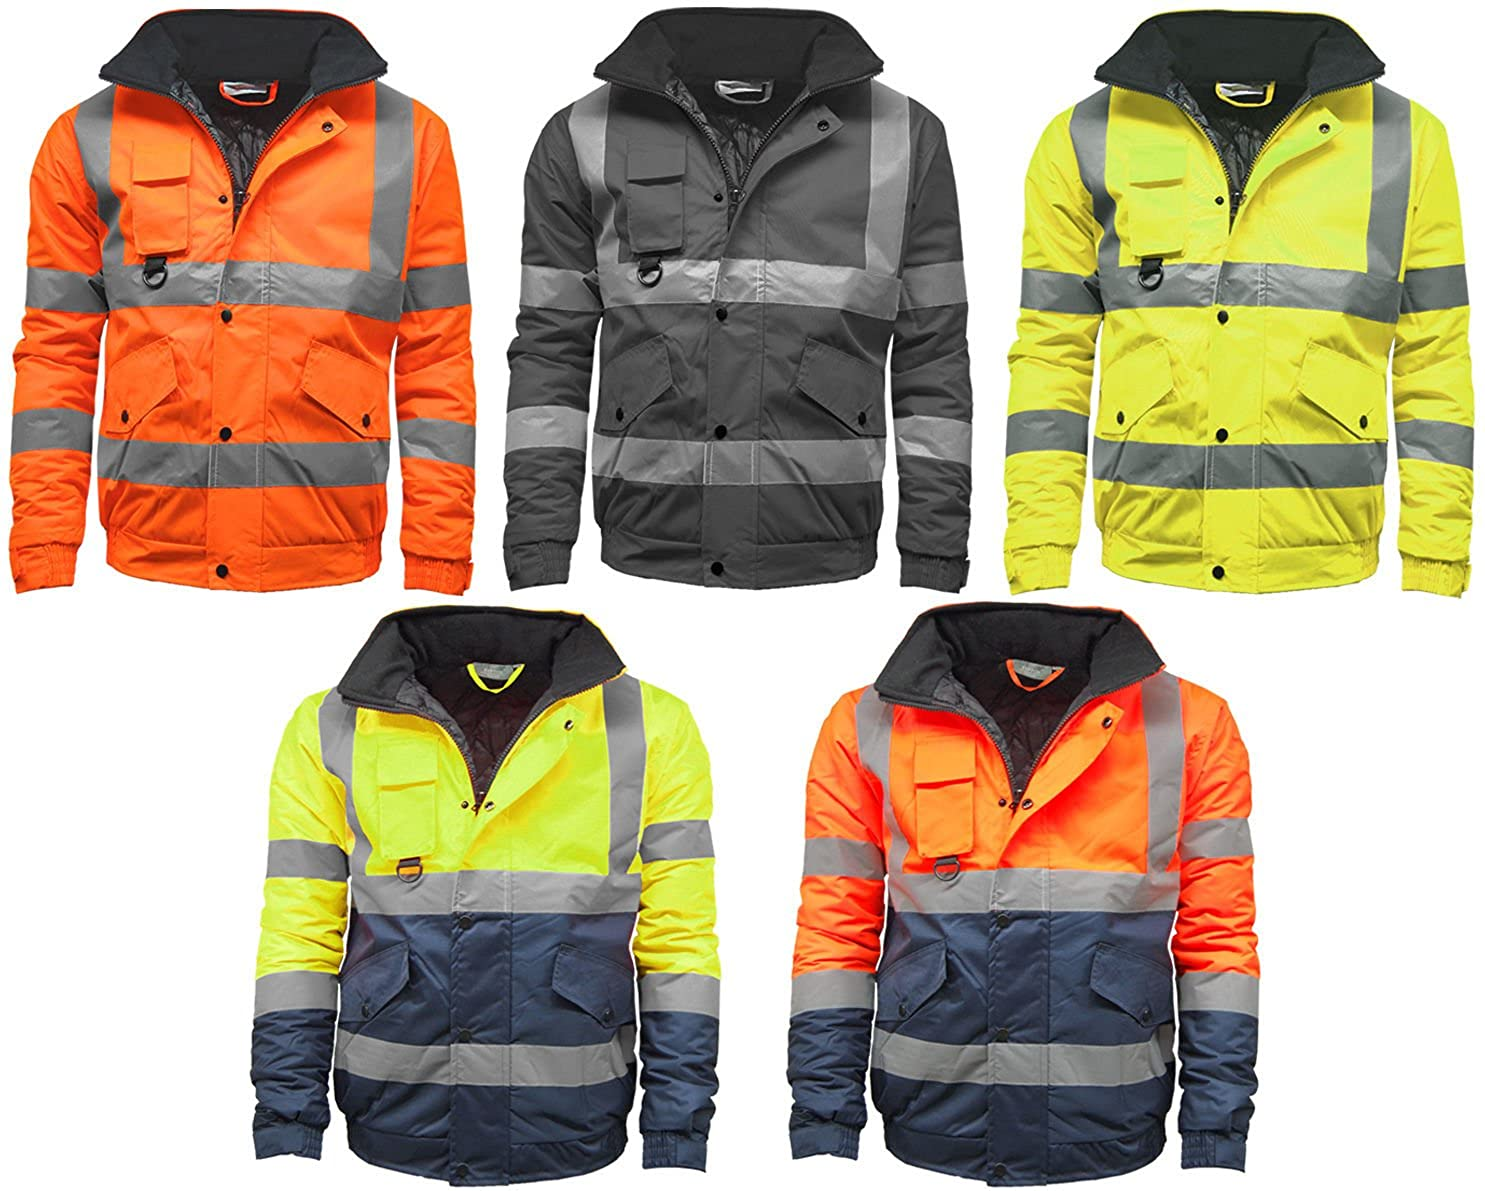 CST STS Mens Waterproof Two Tone Bomber Jacket Hi VIS Visibility Work Wear Hi VIS Standard